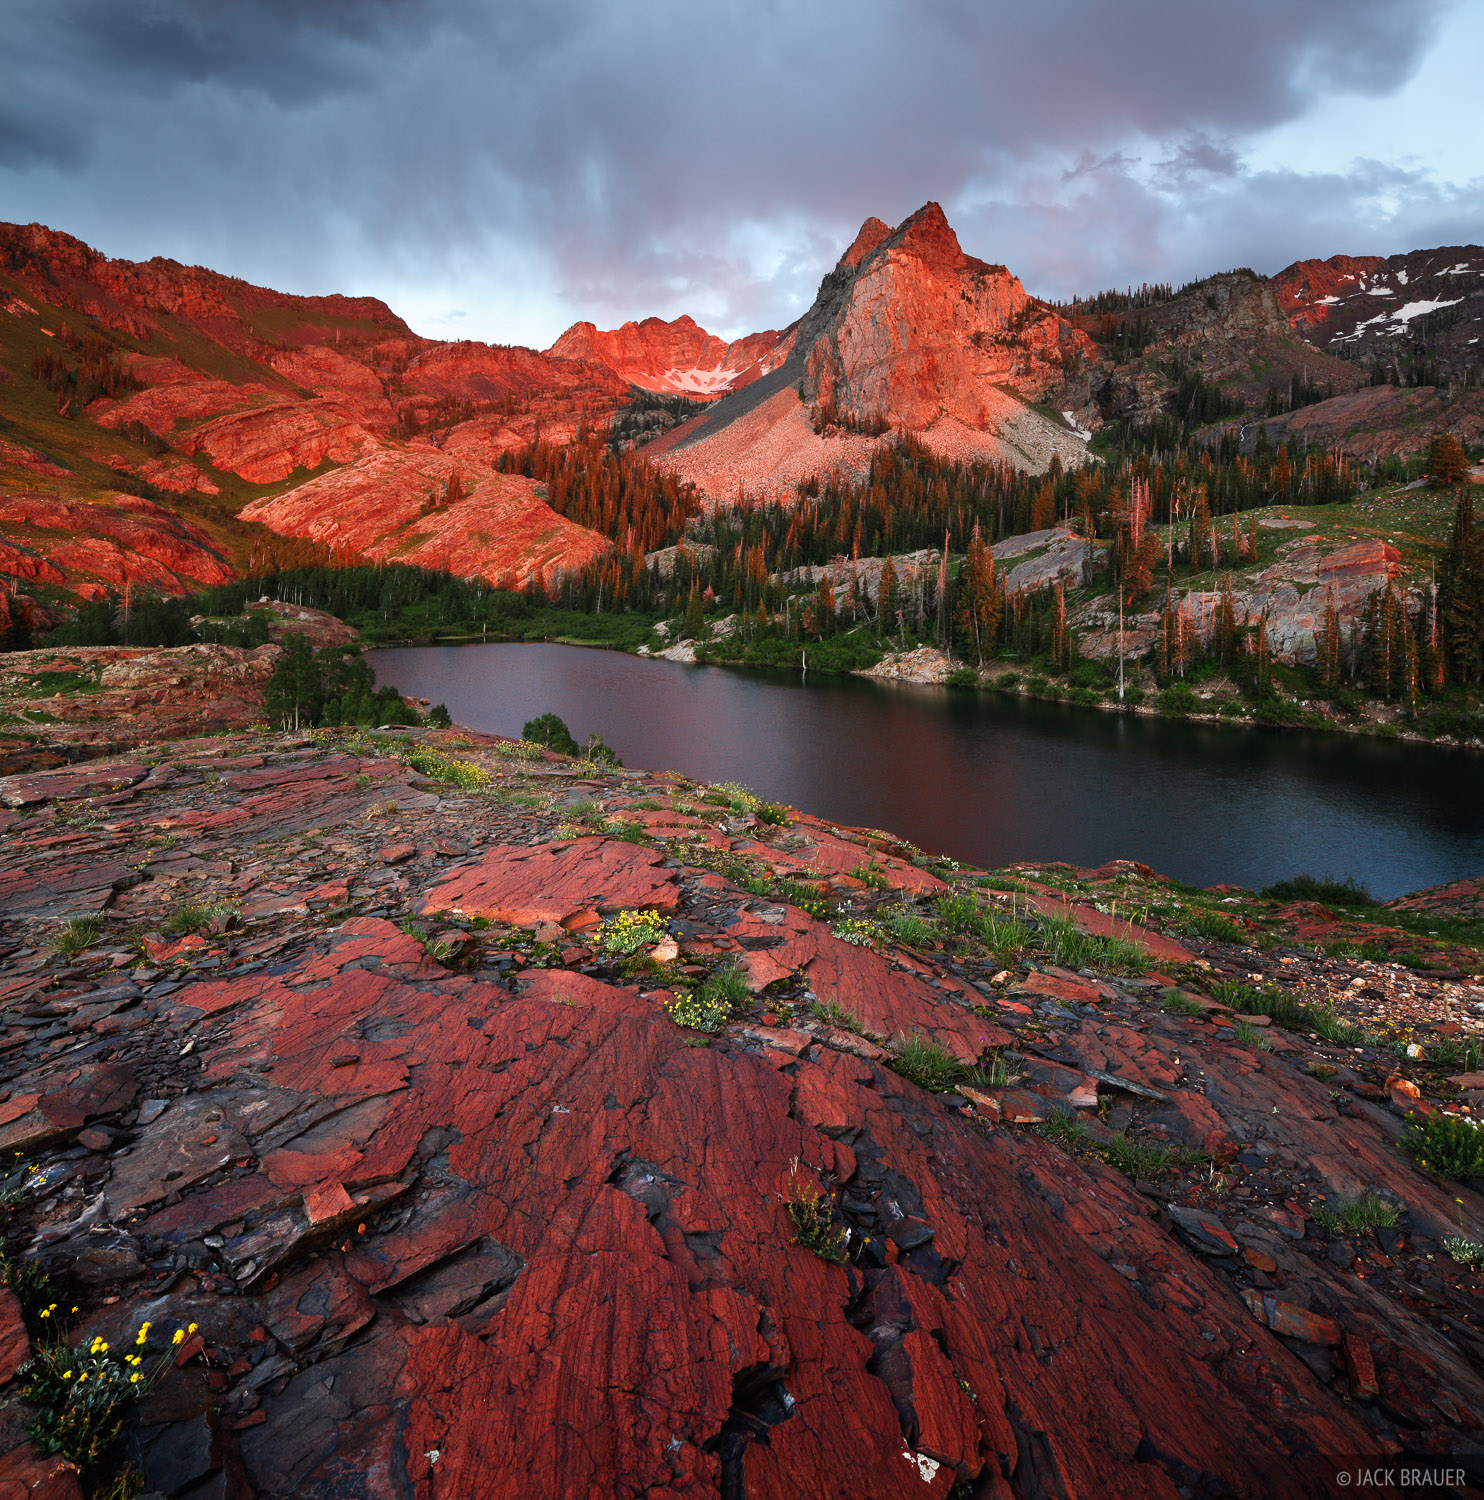 Sundial Peak, Wasatch Range, Utah, sunset, Lake Blanche, photo